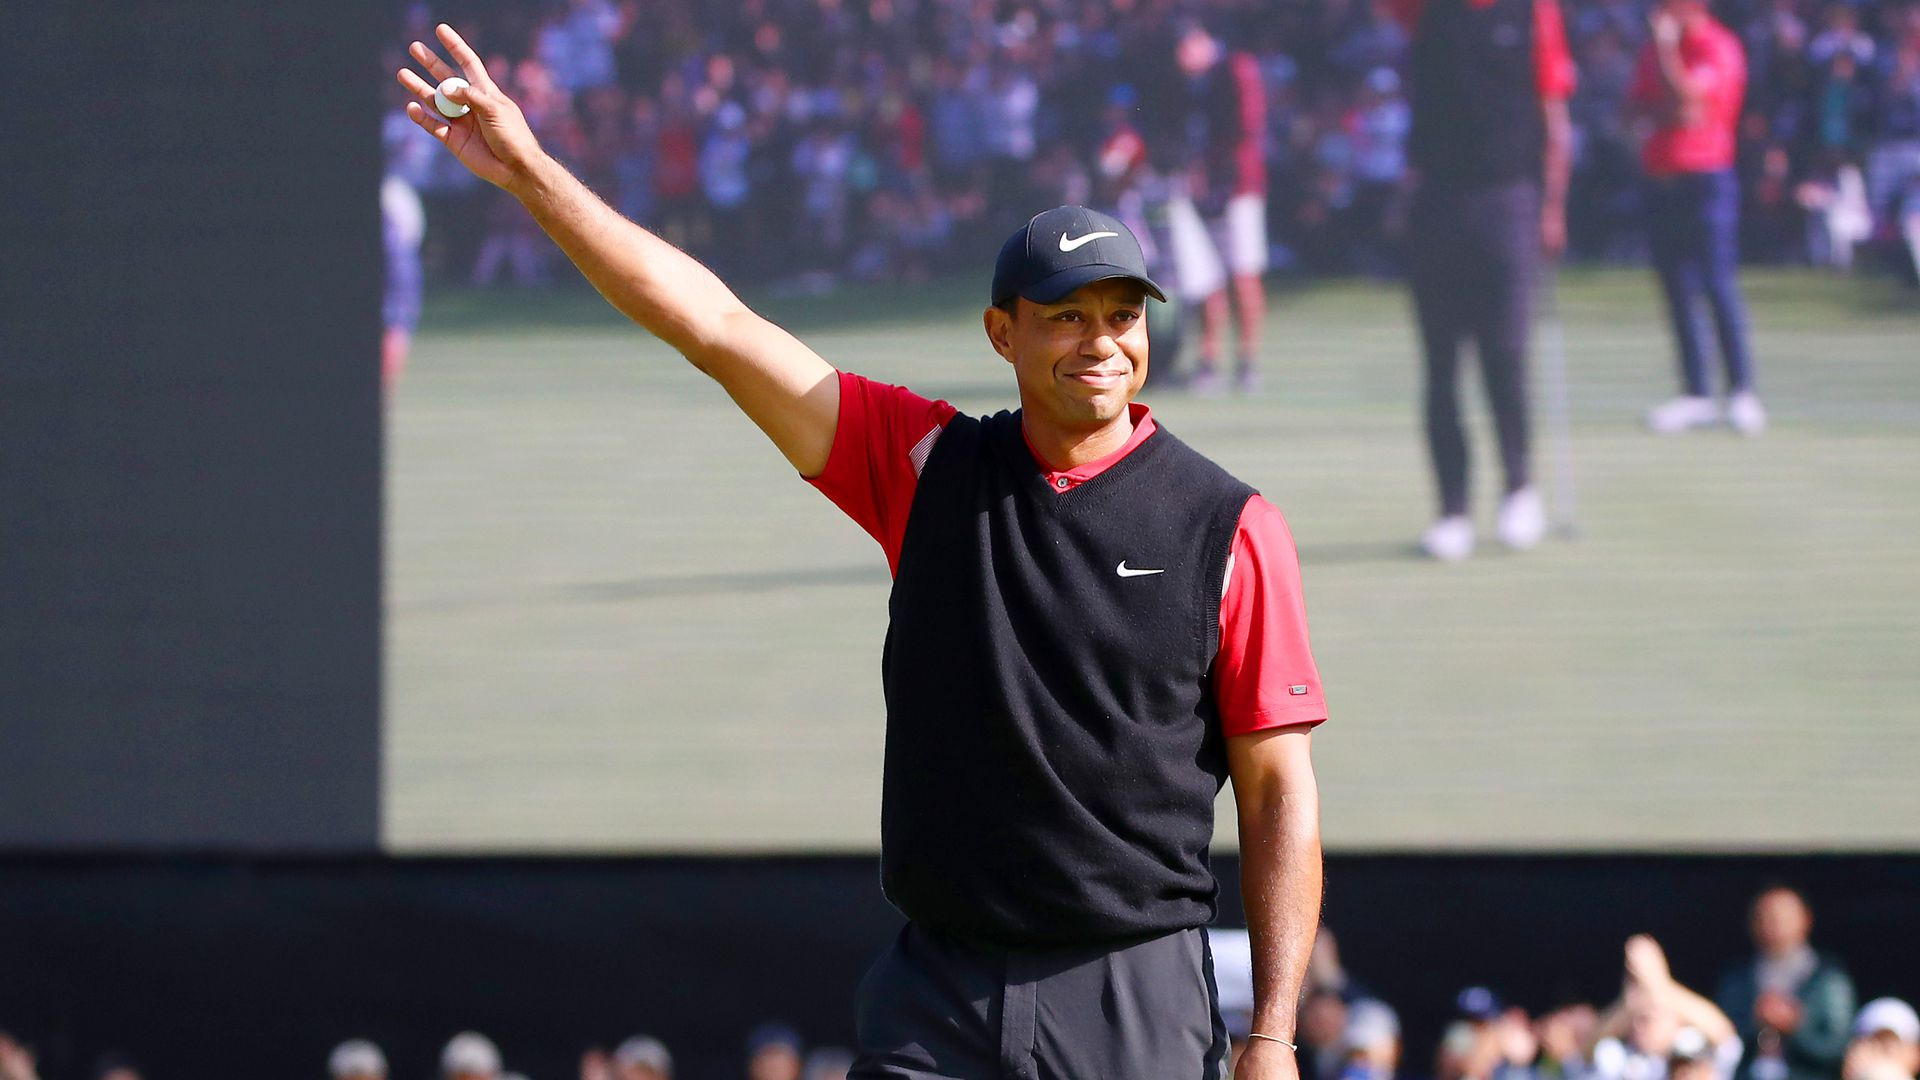 Tiger Woods of the United States celebrates winning the tournament on the 18th green during the final round of the Zozo Championship at Accordia Golf Narashino Country Club on October 28